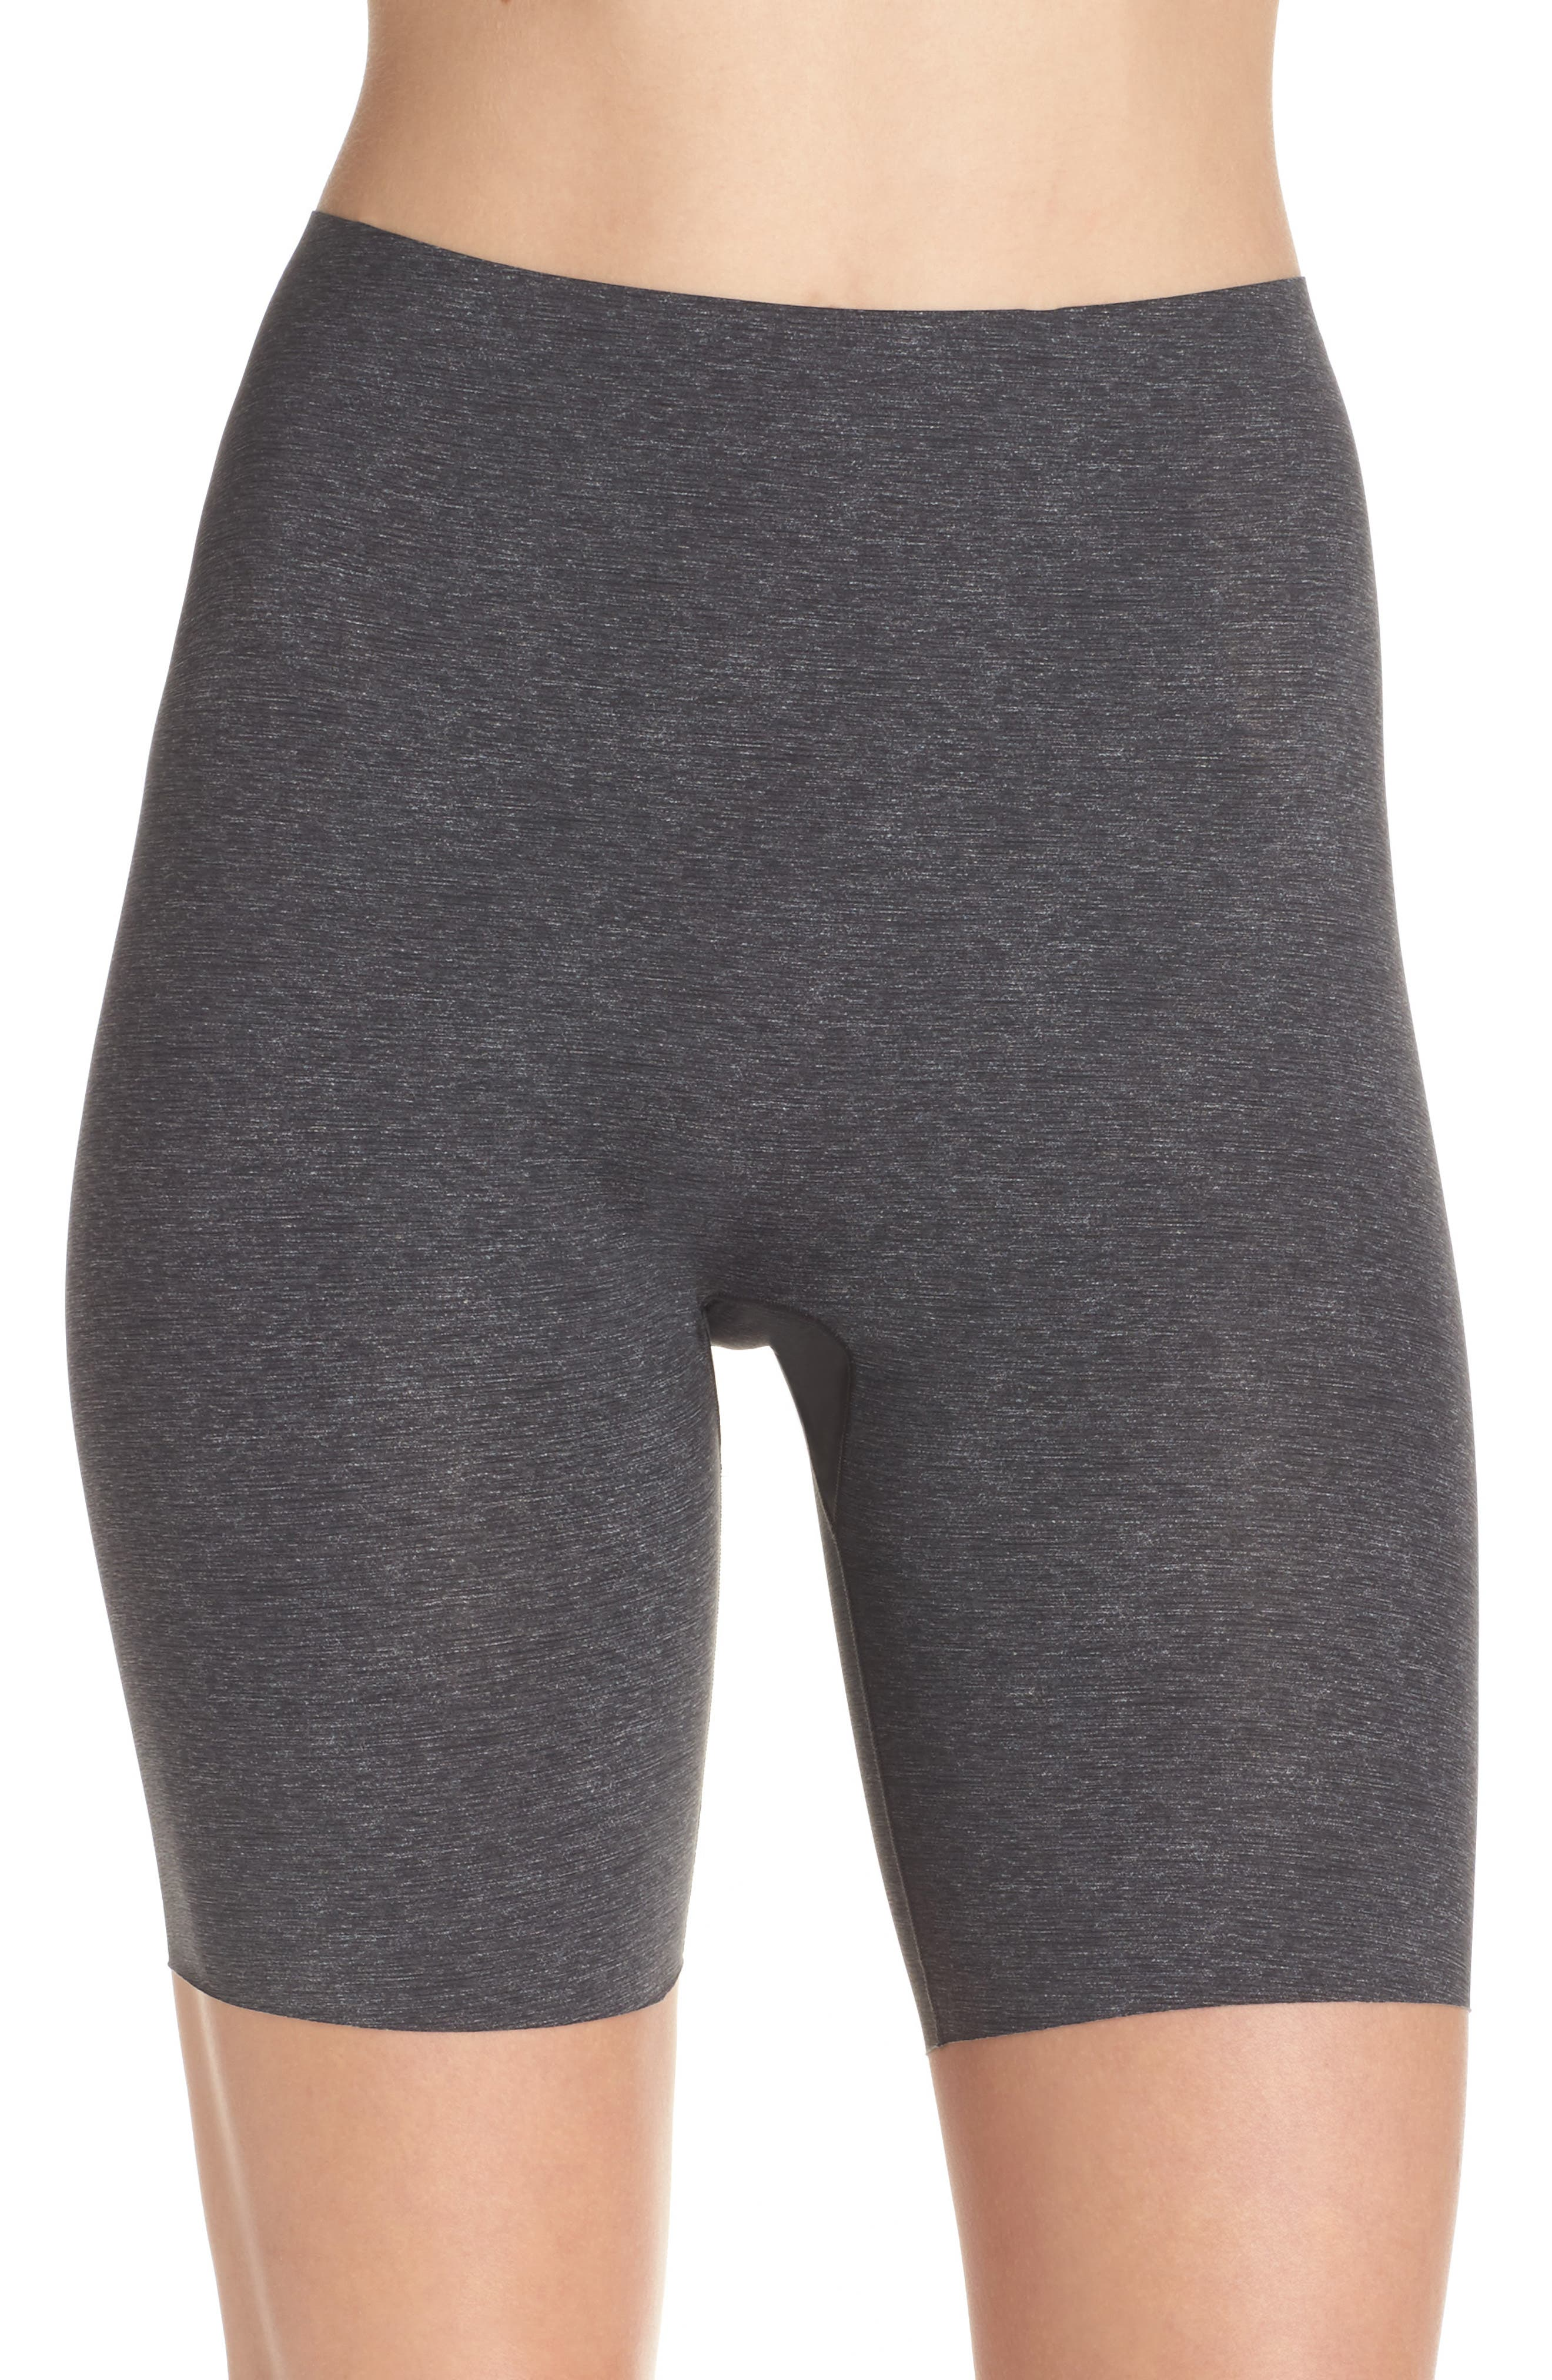 Alternate Image 1 Selected - SPANX® Thinstincts Mid Thigh Shorts